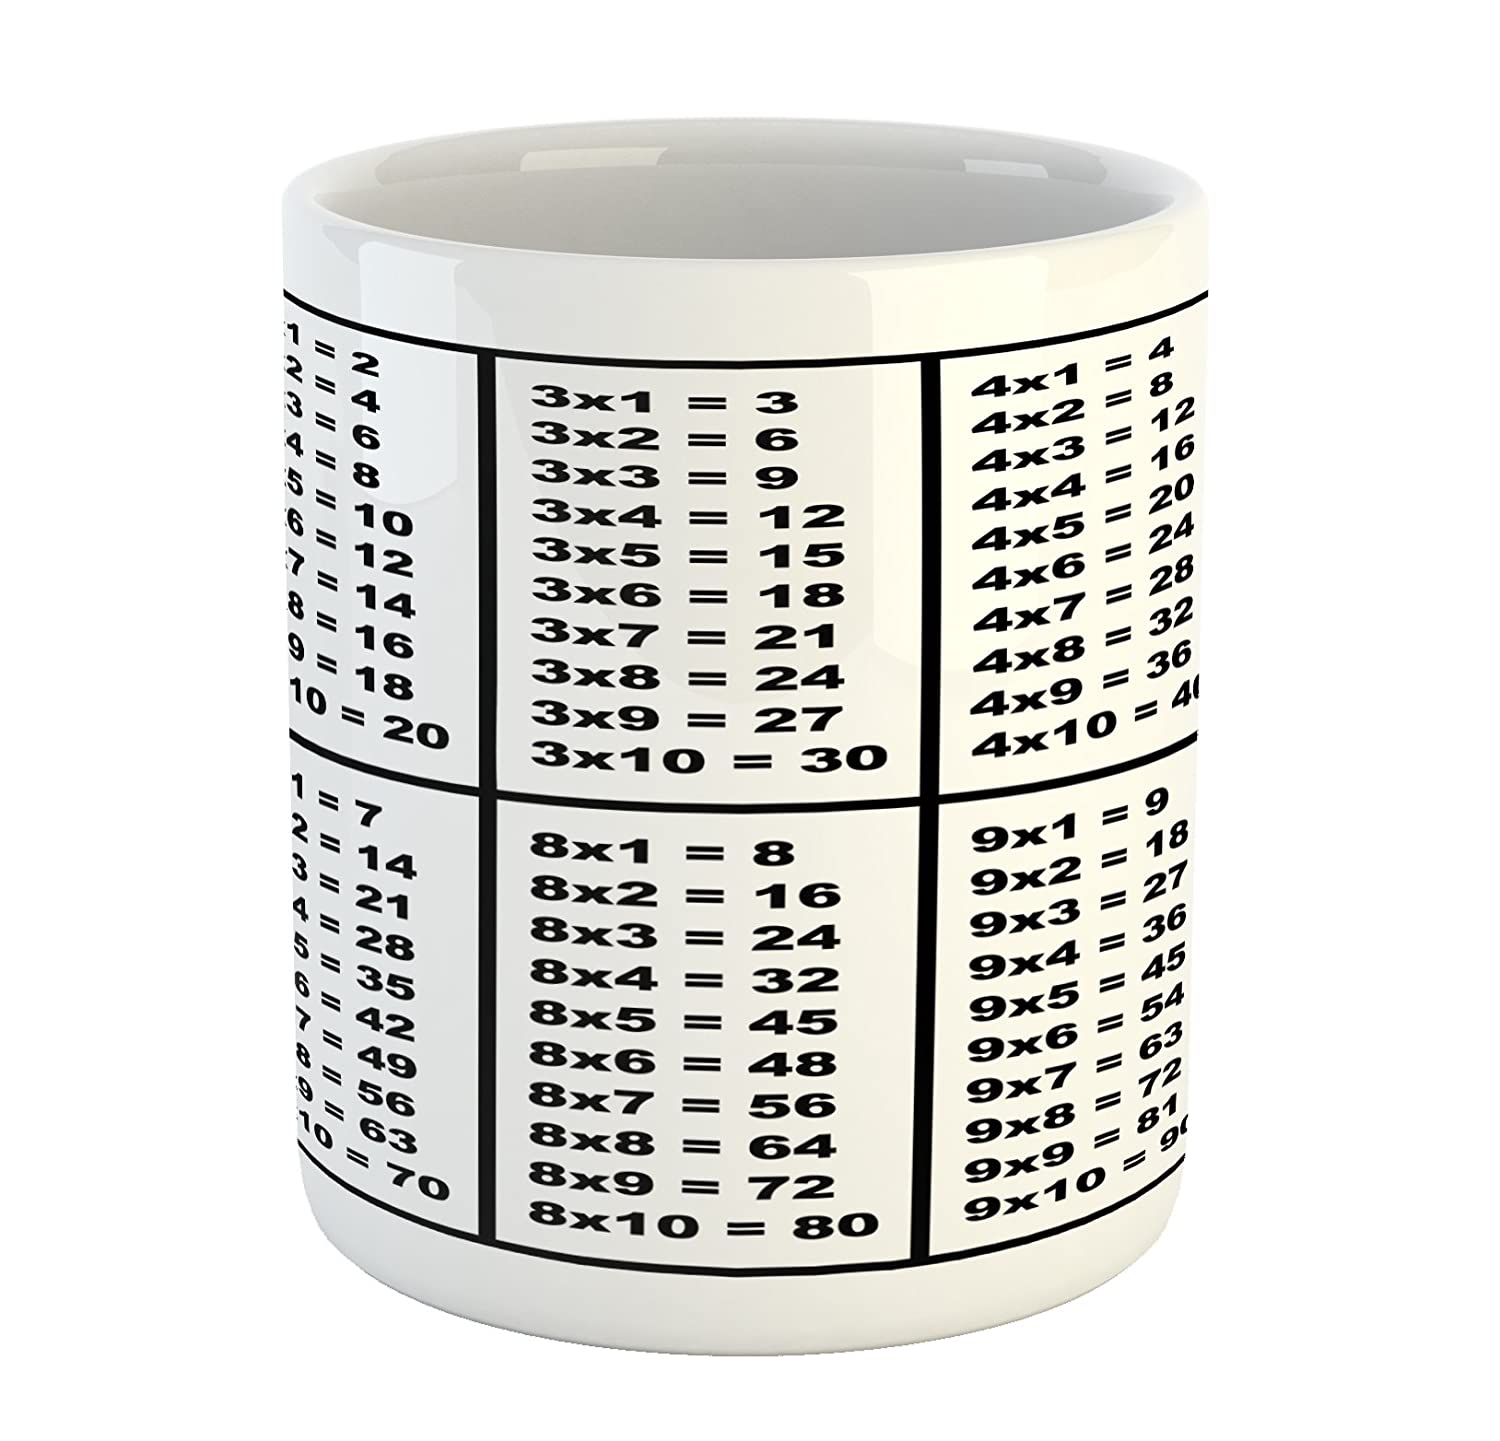 Multicolor Printed Ceramic Coffee Mug Water Tea Drinks Cup Diner Burgers Beer Cafe Sign with A Waitress on A Car Freeway Retro Illustration Lunarable Route 66 Mug